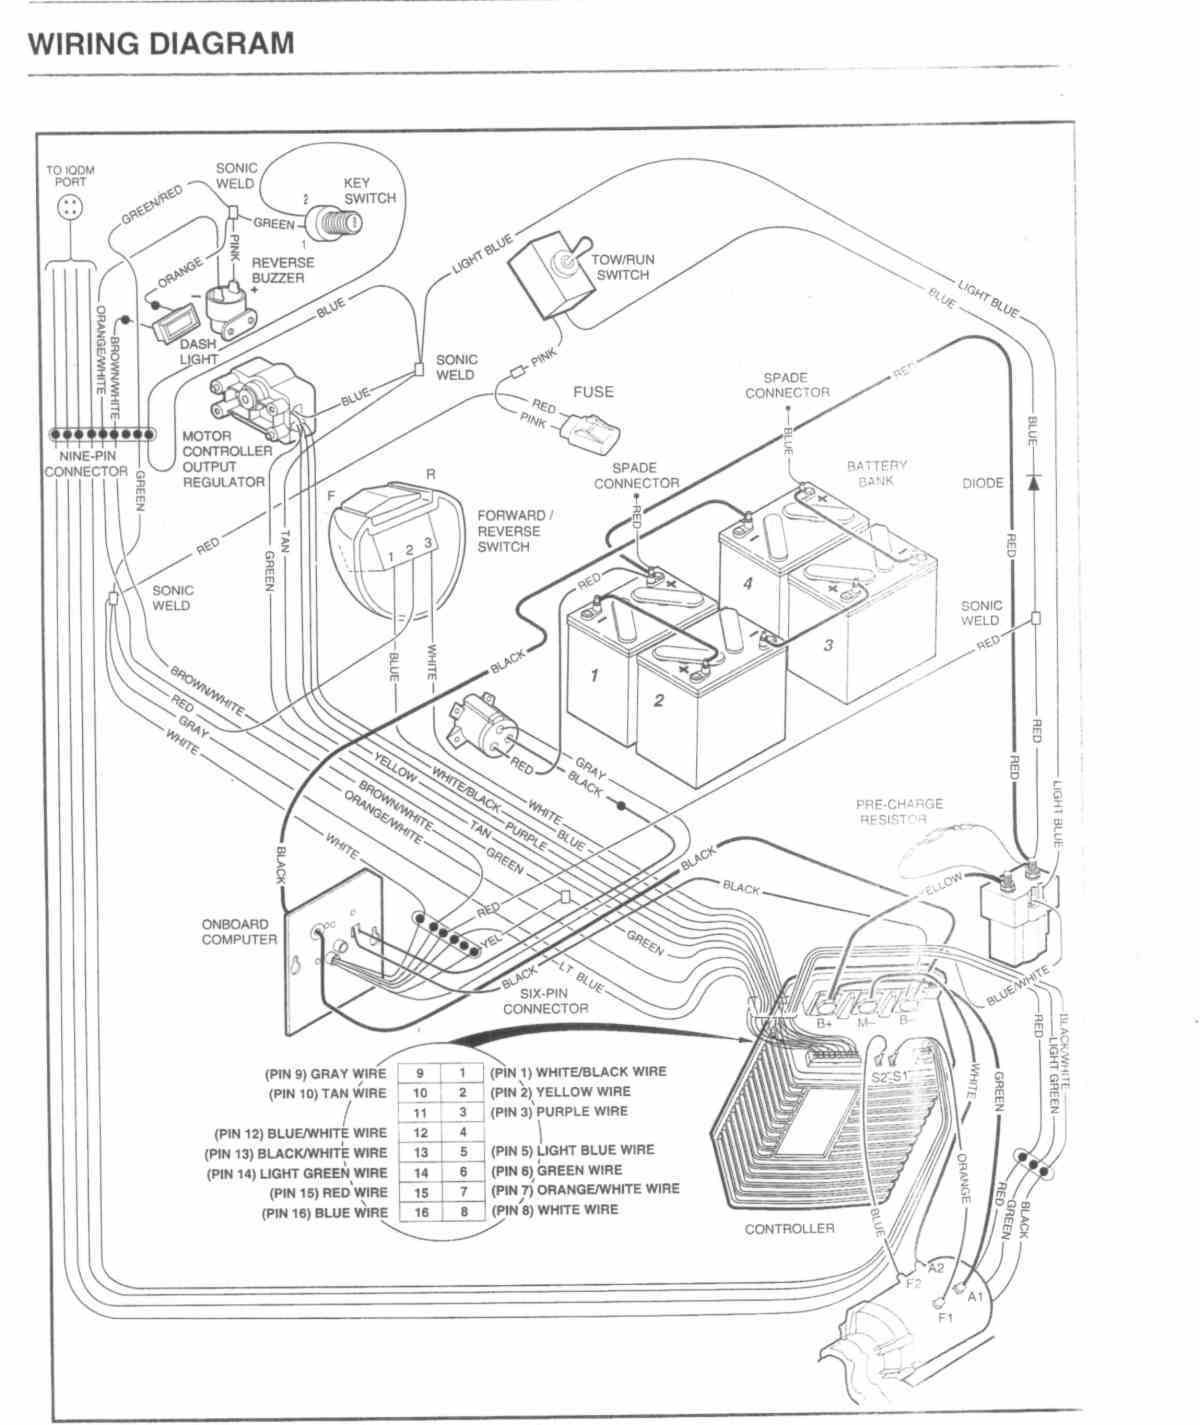 94 Ezgo 36 Volt Wiring Diagram Free Image About Wiring Diagram And